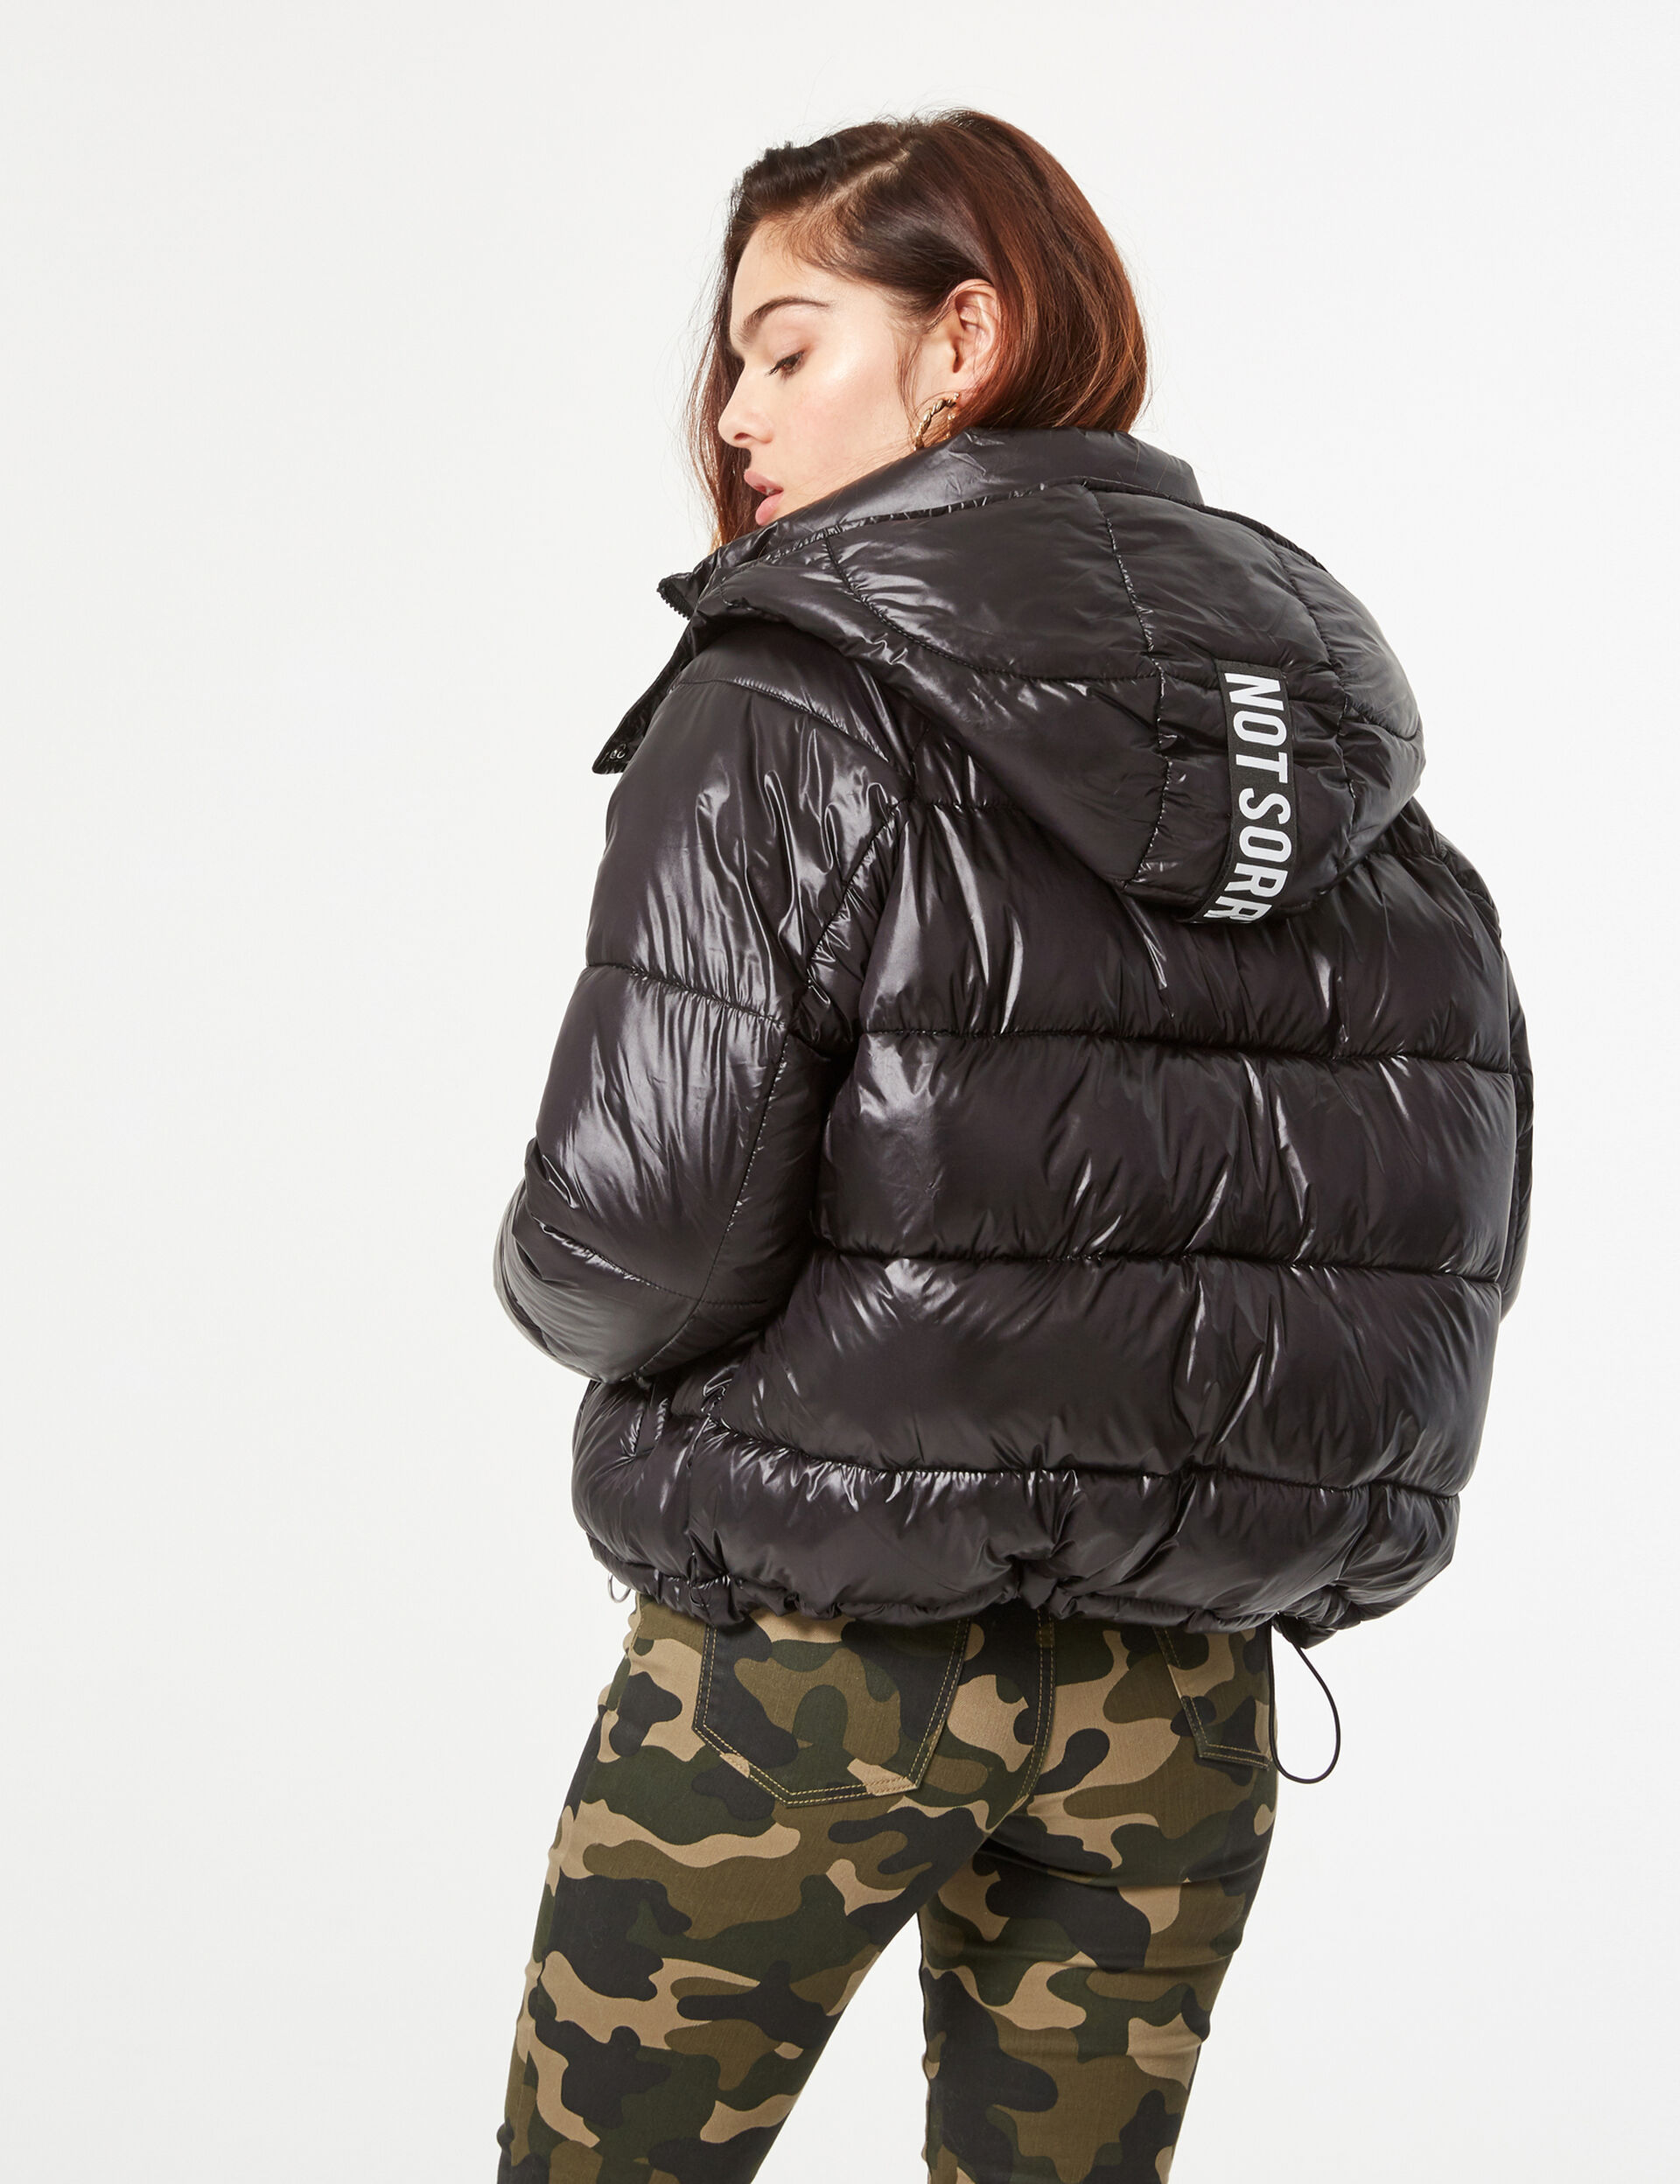 Padded jacket with 'not sorry' slogan